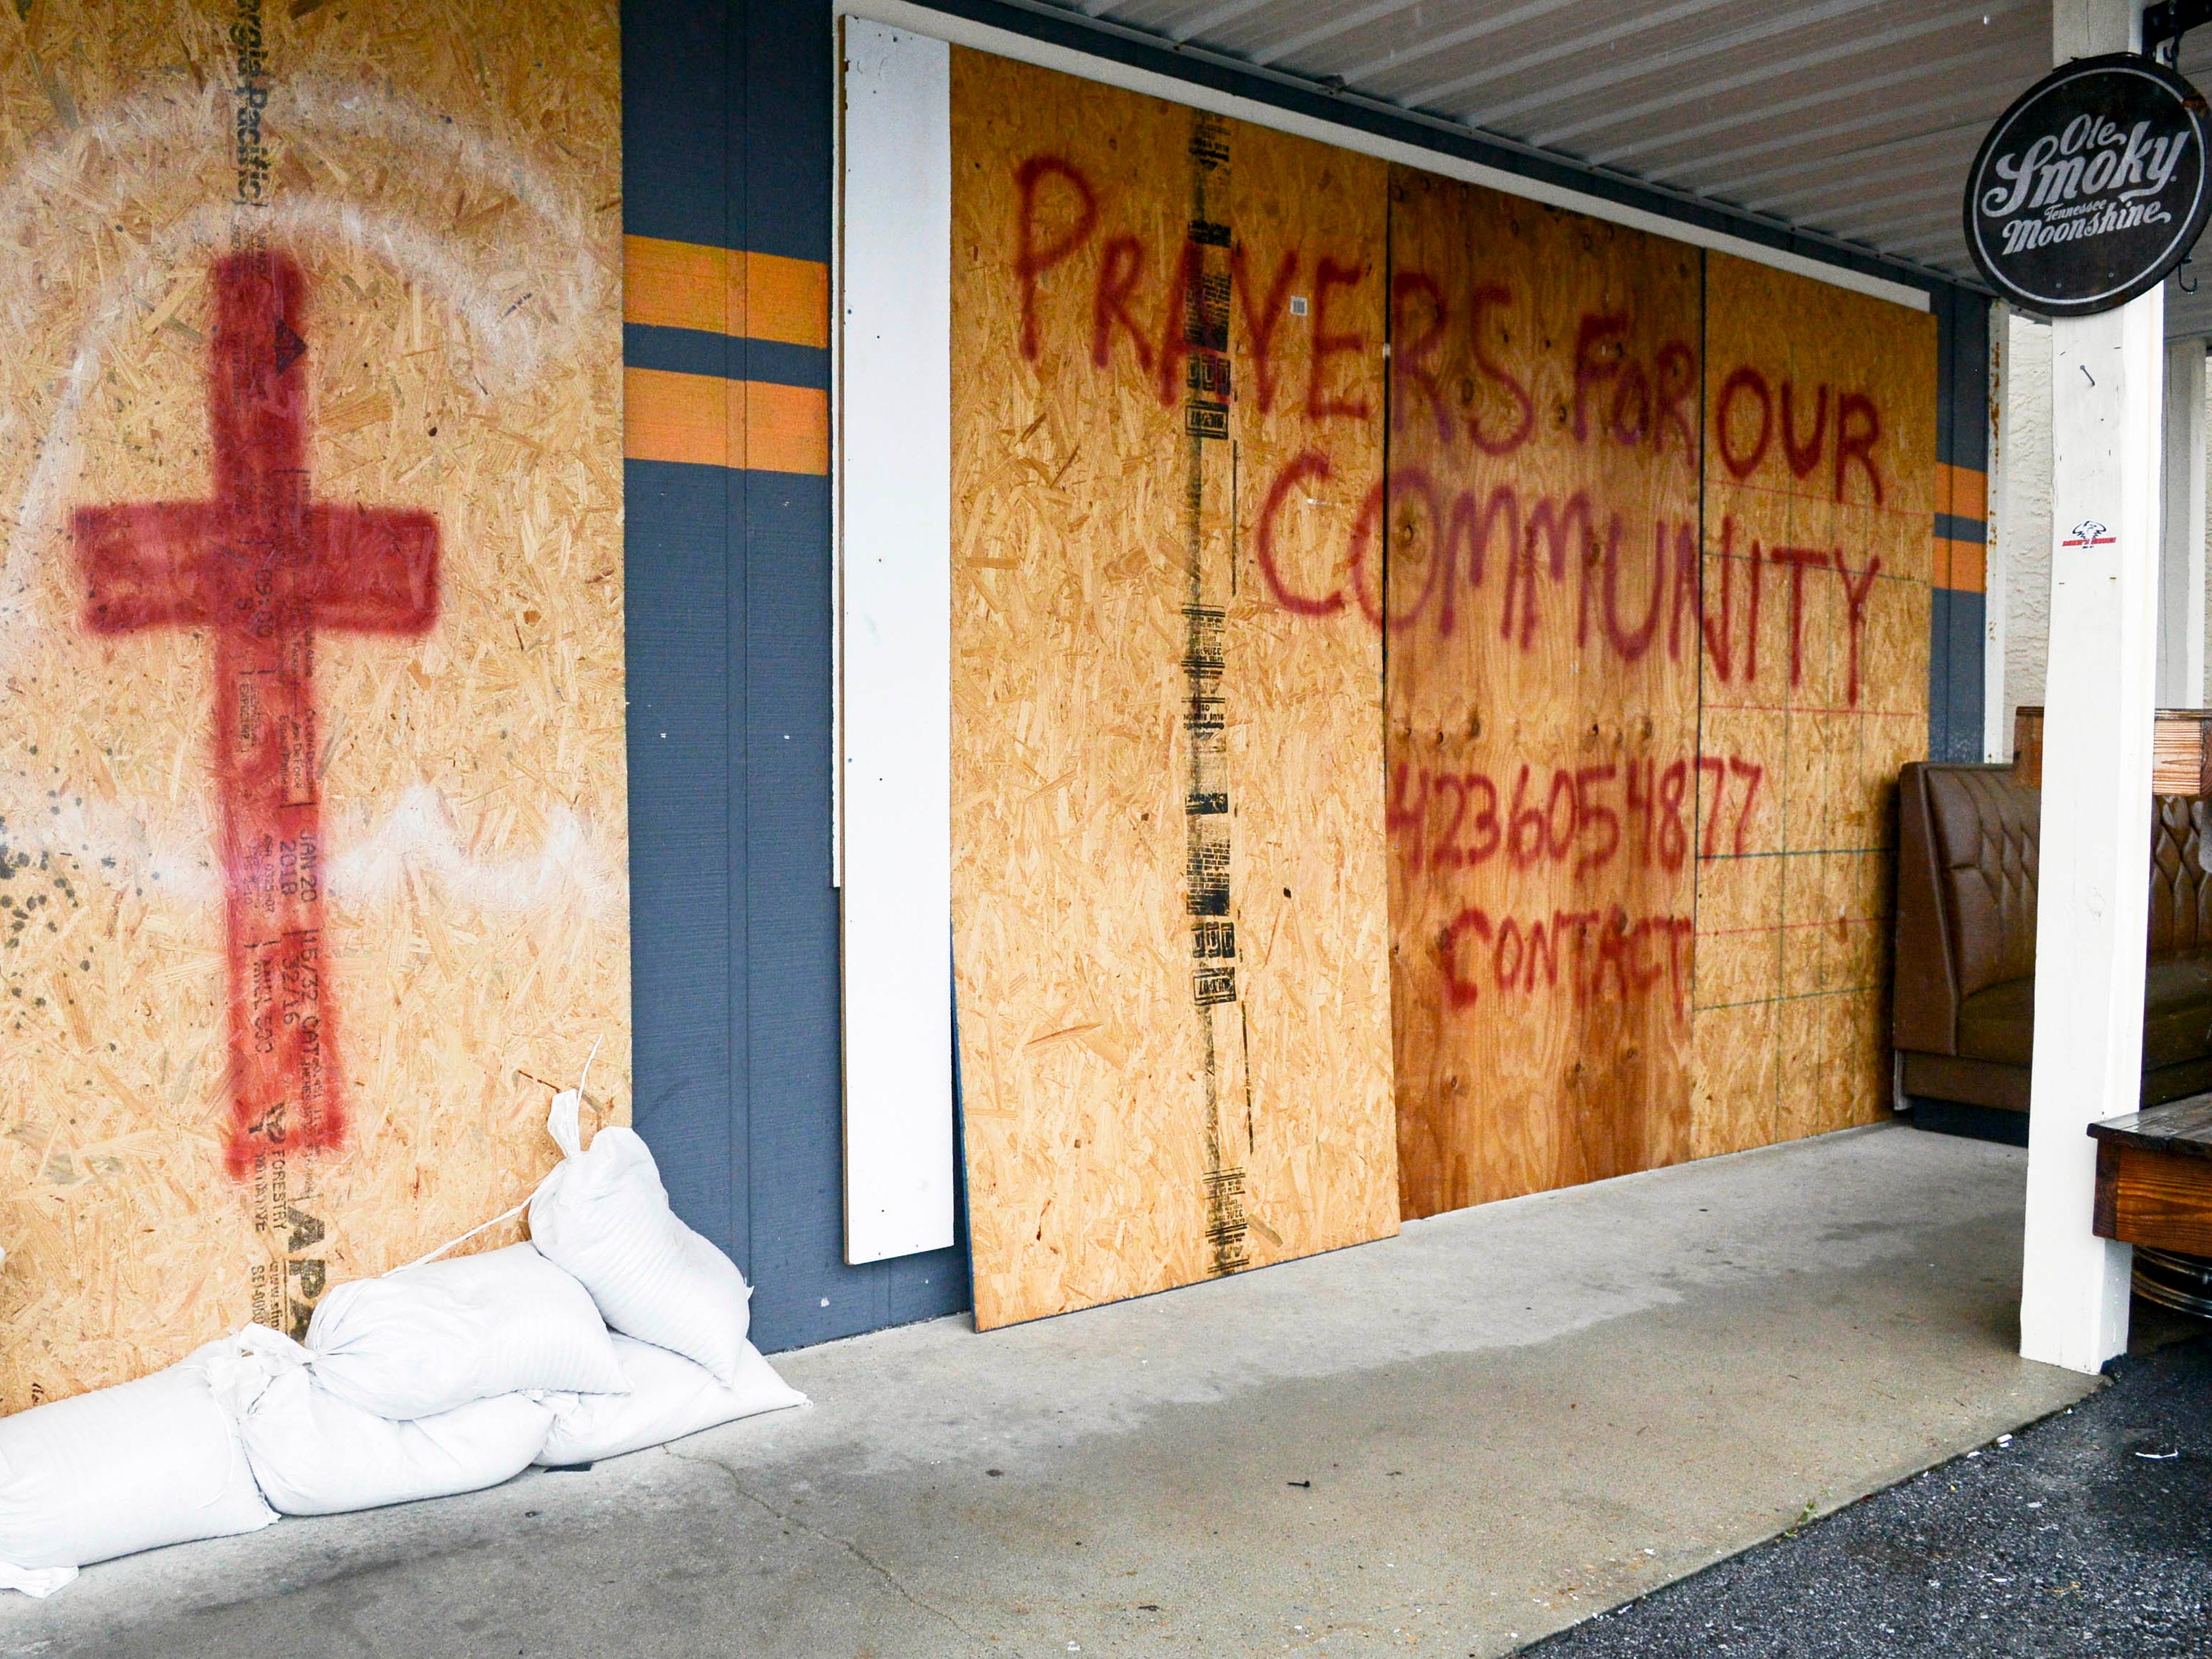 Oct 10, 2018; Panama City, FL, USA; Sandbags, boards and a prayer request guard the front of South Iron Customs motorcycle shop on Panama City Beach. Mandatory Credit: Craig Bailey/FLORIDA TODAY via USA TODAY NETWORK ORIG FILE ID:  20181008_ajw_usa_121.jpg